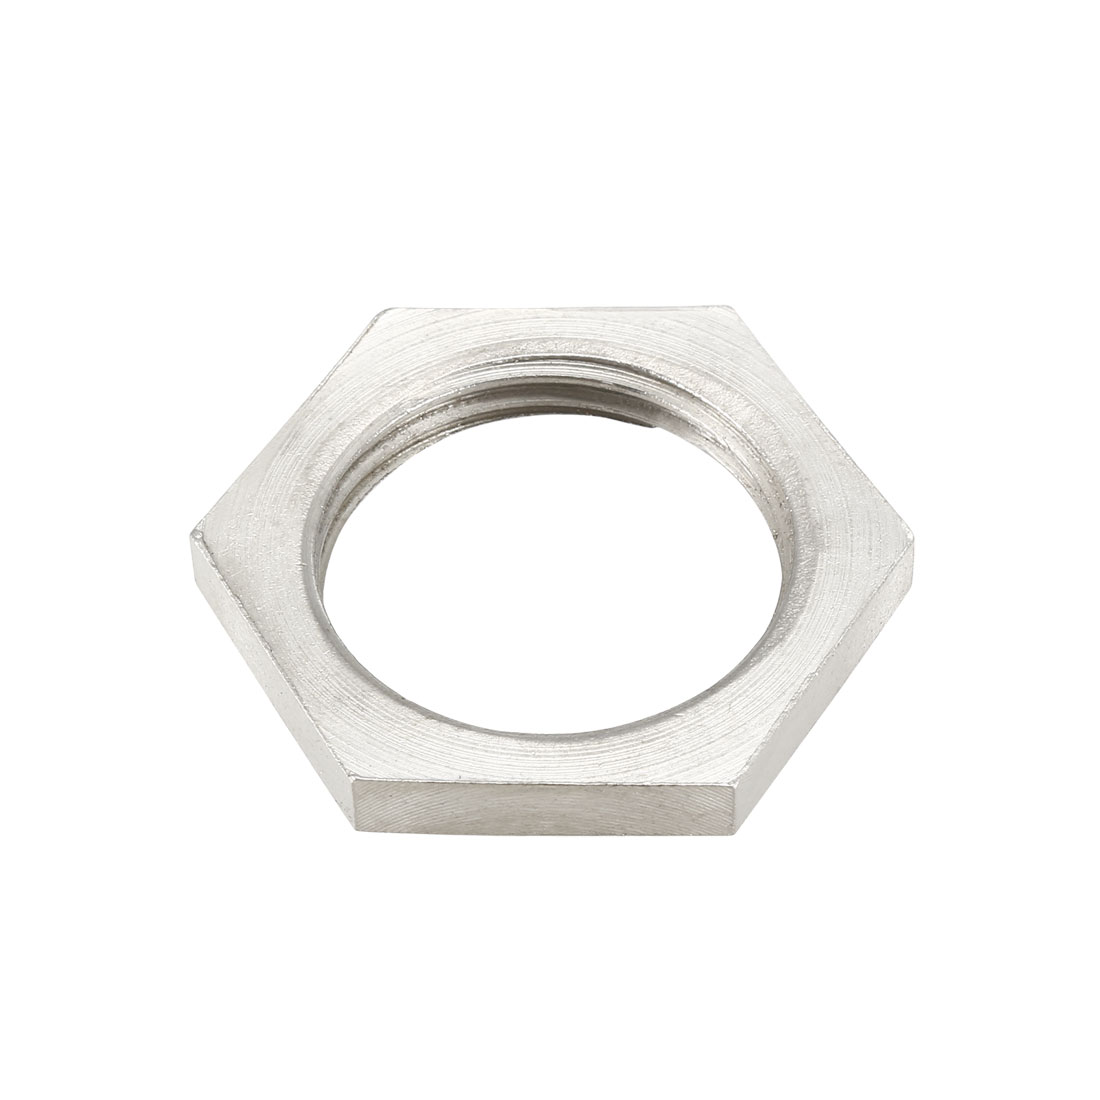 Pipe Fitting Hex Locknut SUS304 Stainless Steel G3/4 Inch Female Threaded, 3 Pcs